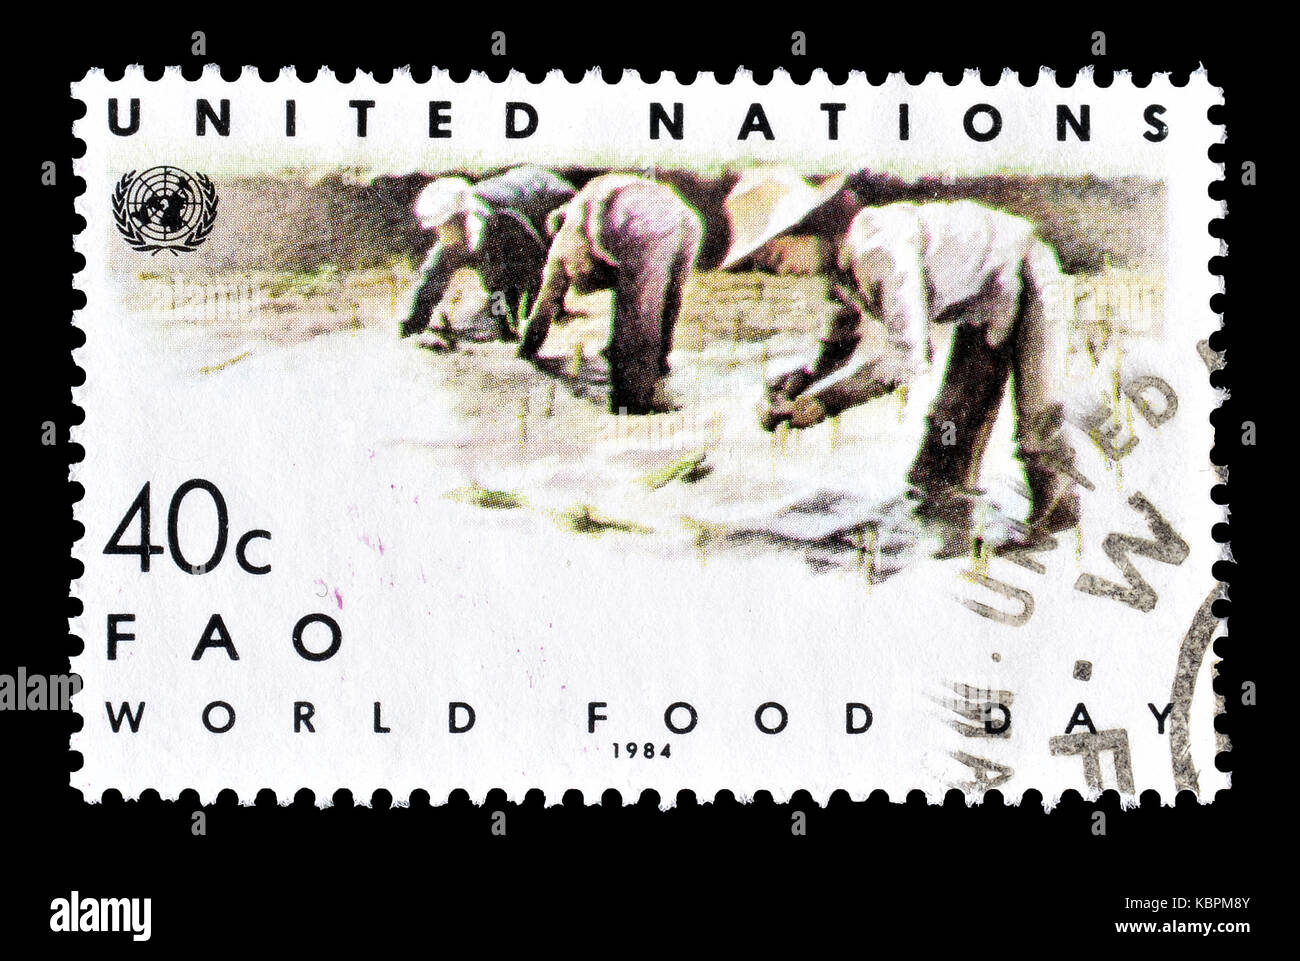 Cancelled postage stamp printed by United Nations, that promotes World food day. - Stock Image